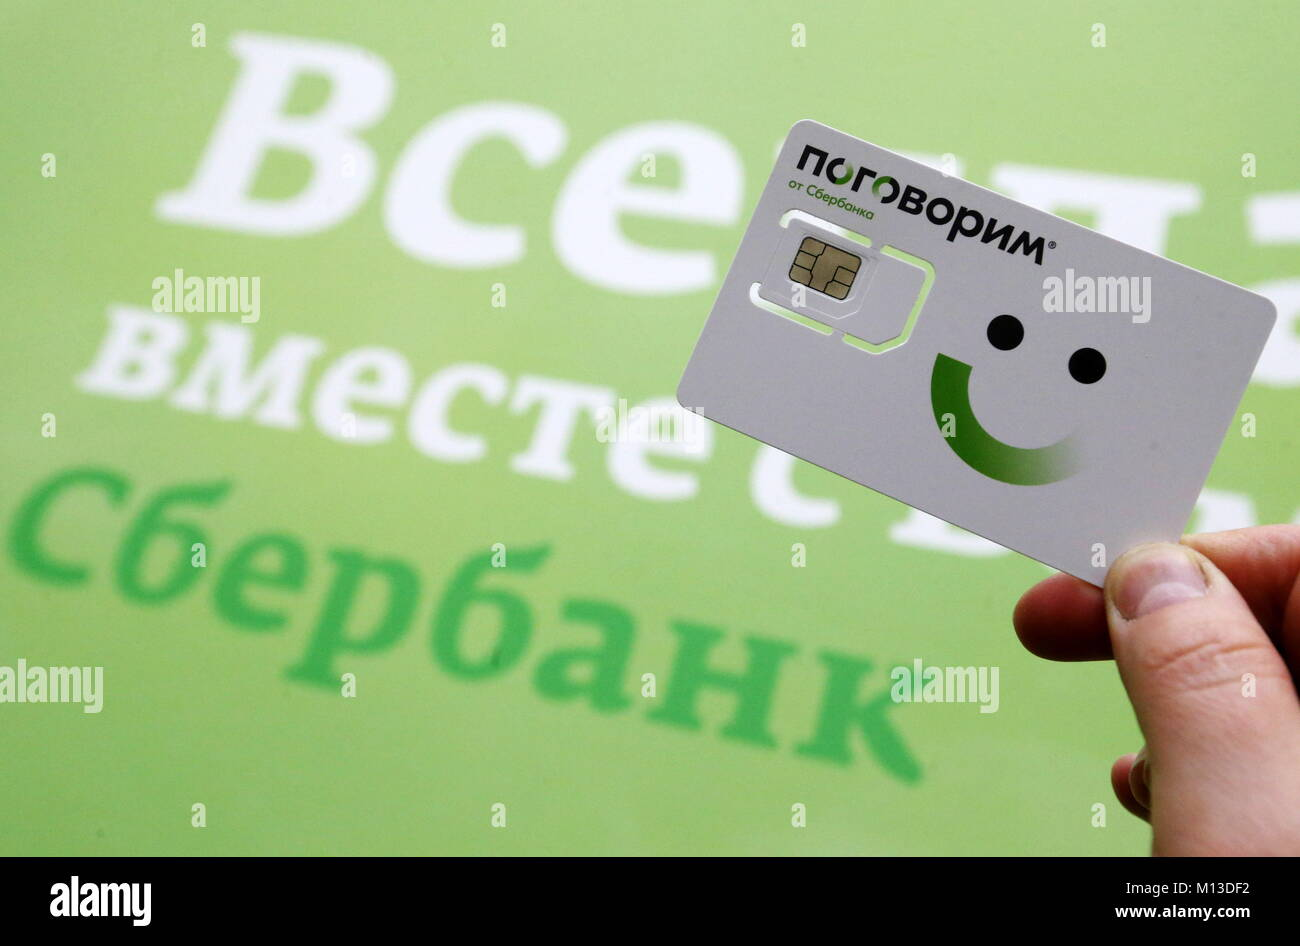 How to get a Sberbank card and use it correctly 56